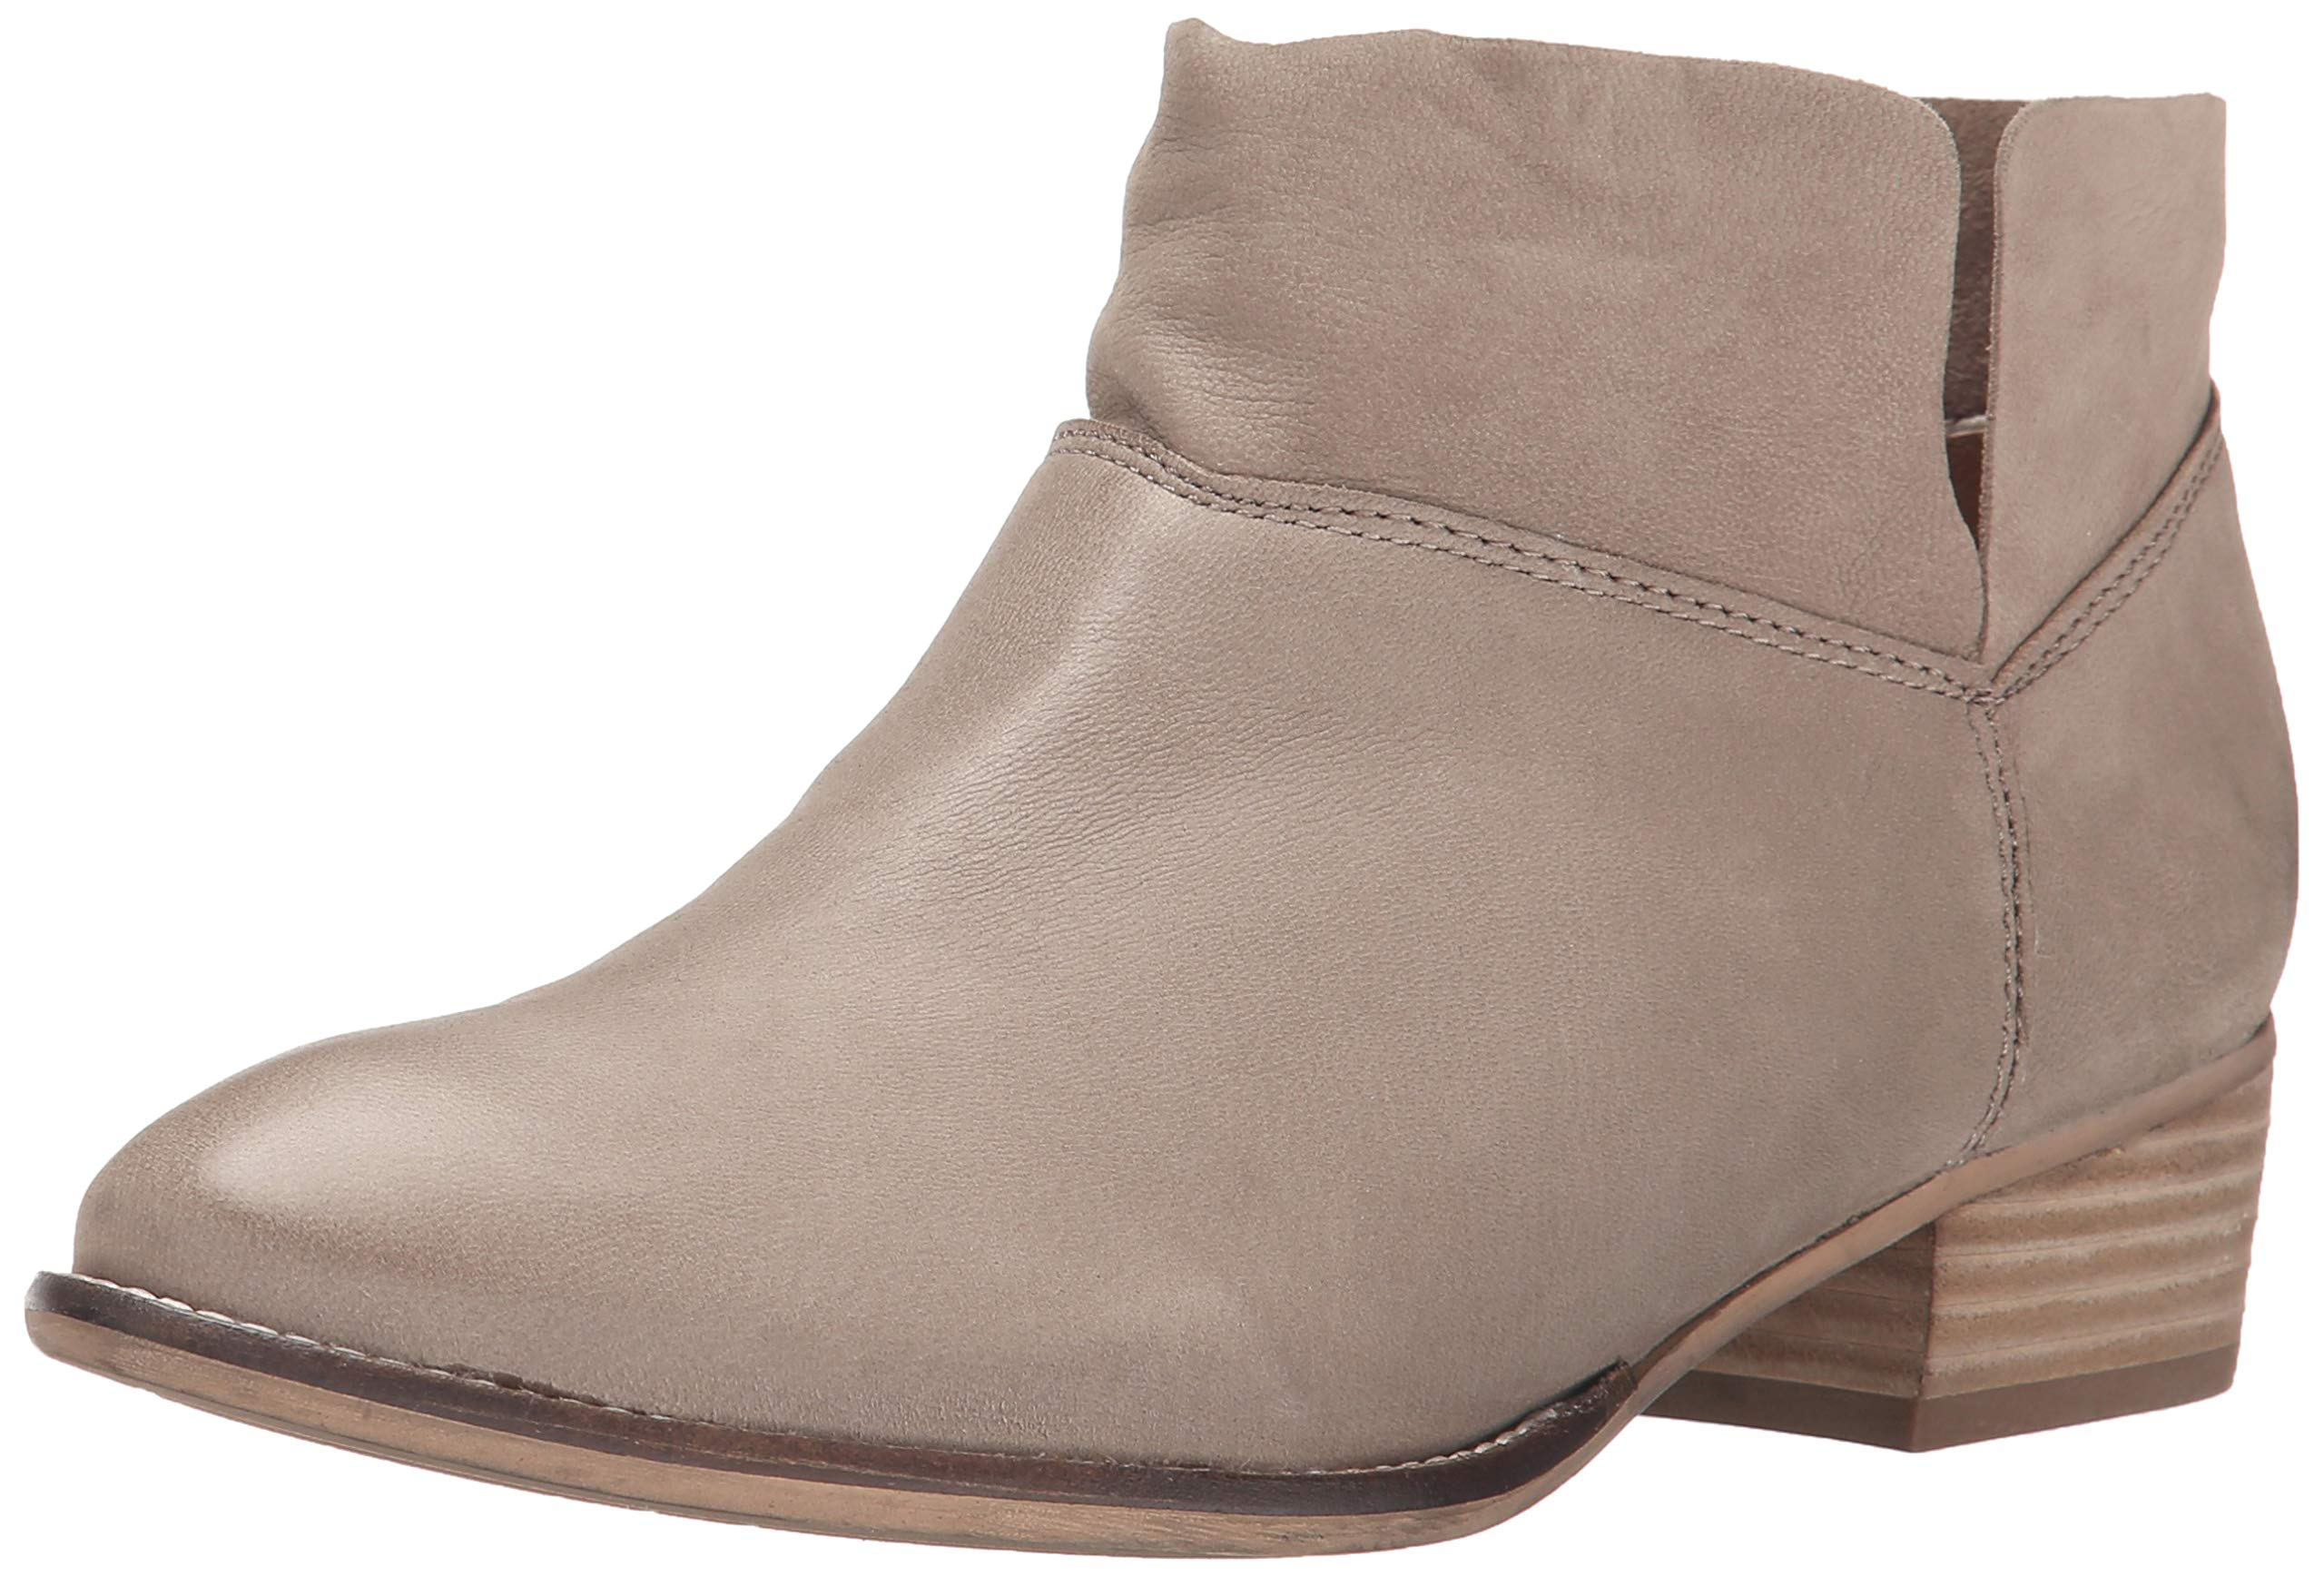 Seychelles Women's Snare Ankle Boot, Taupe 240, 7.5 M US by Seychelles